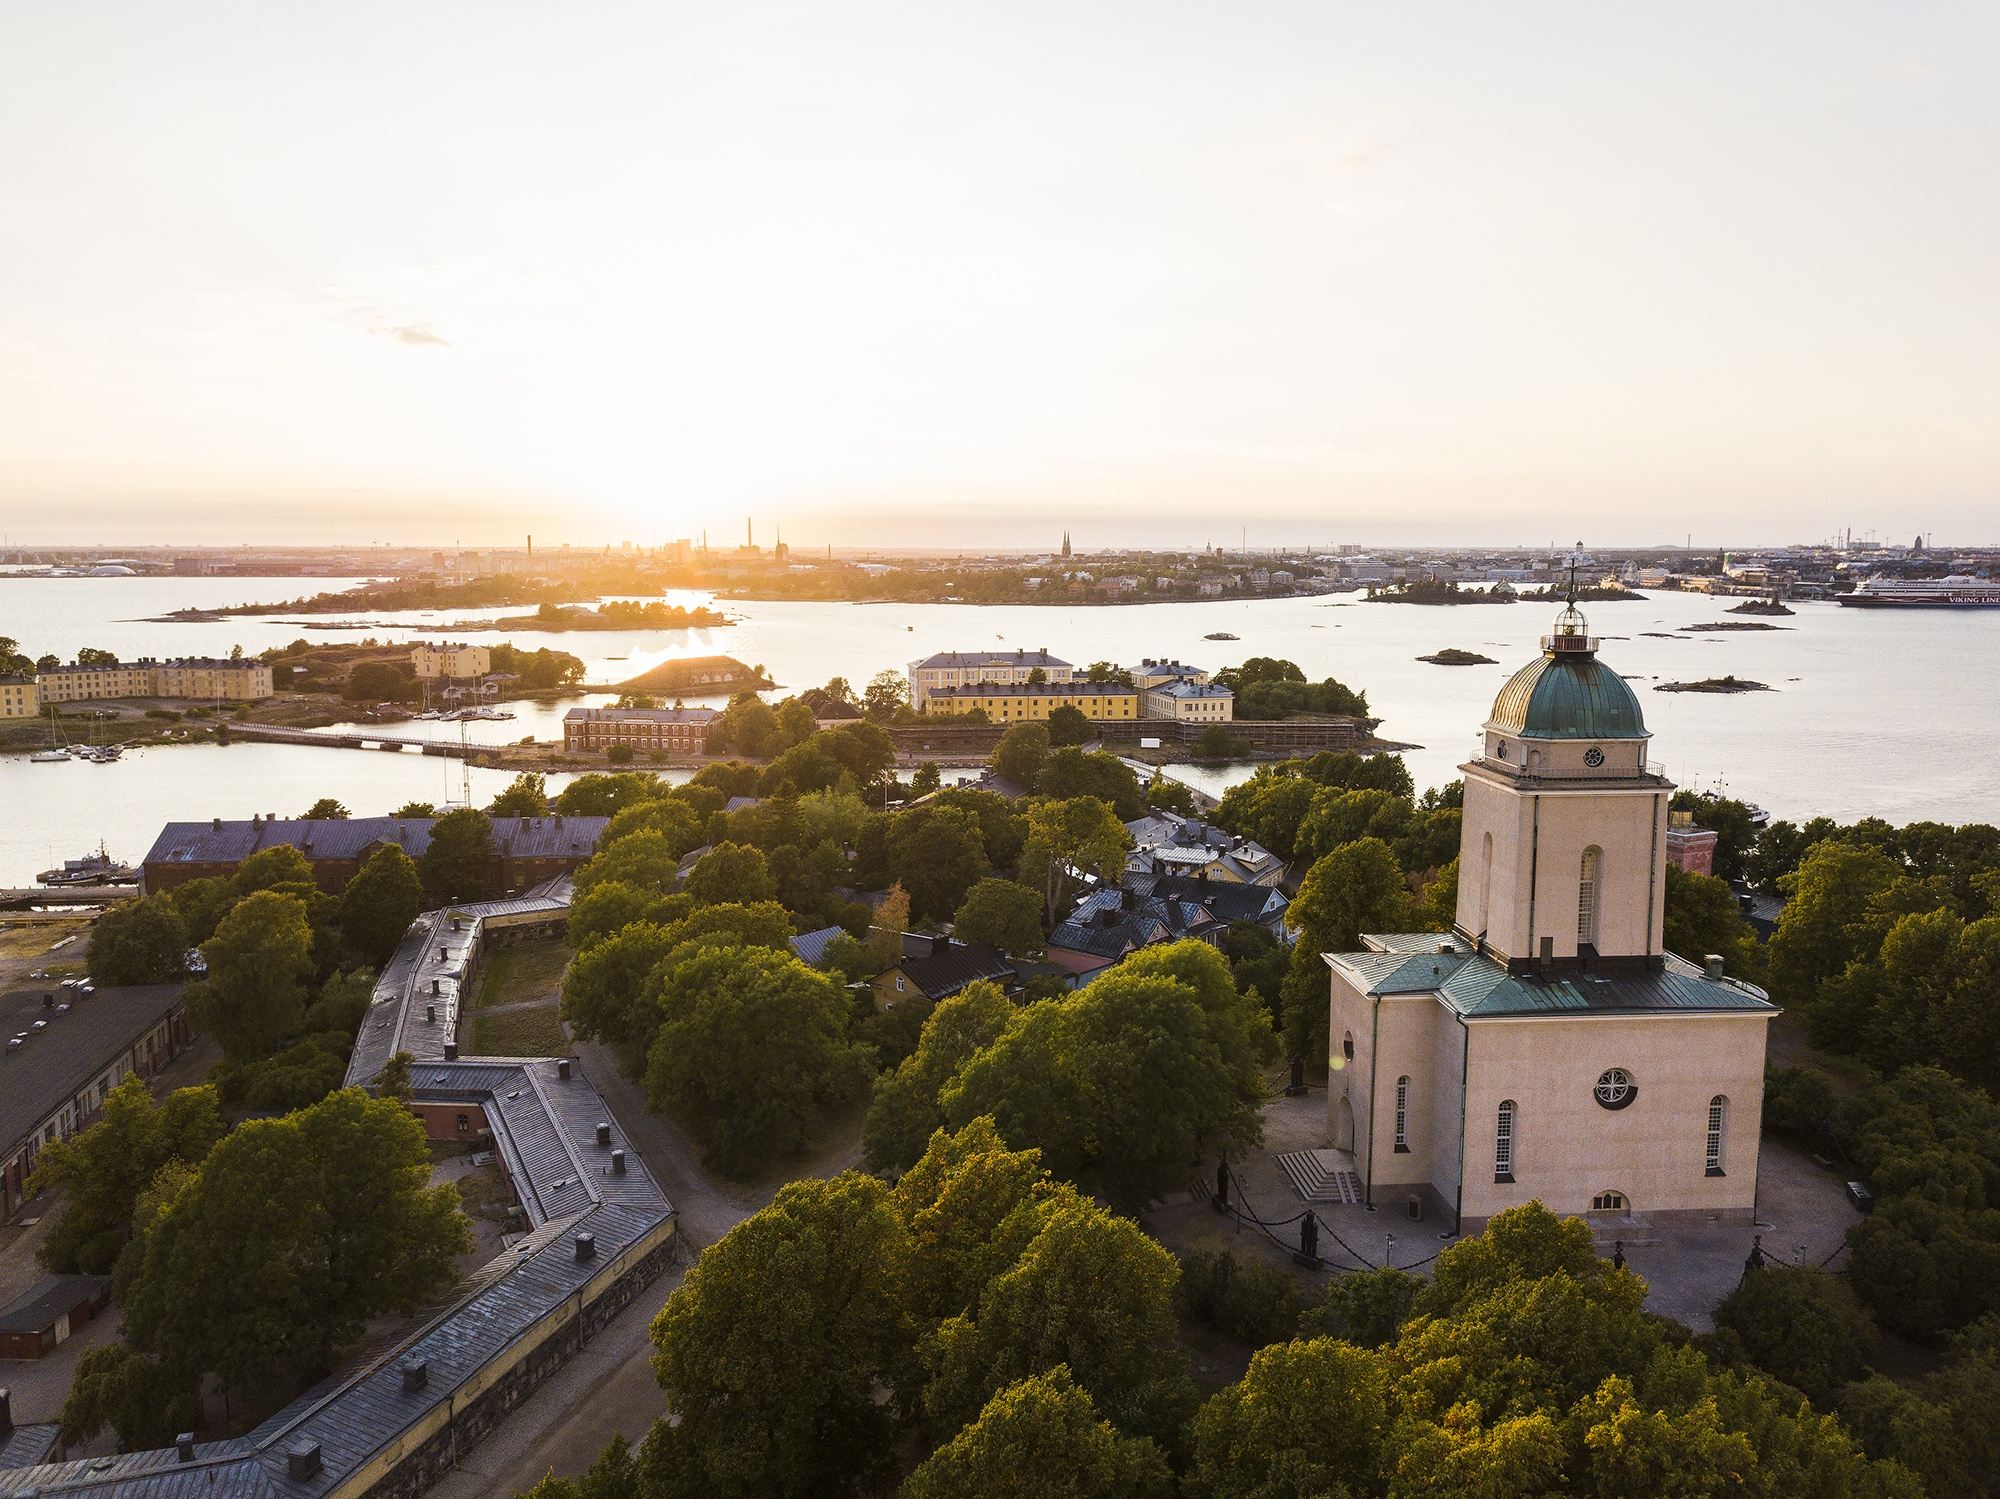 Sunset in Suomenlinna fortress island in Helsinki